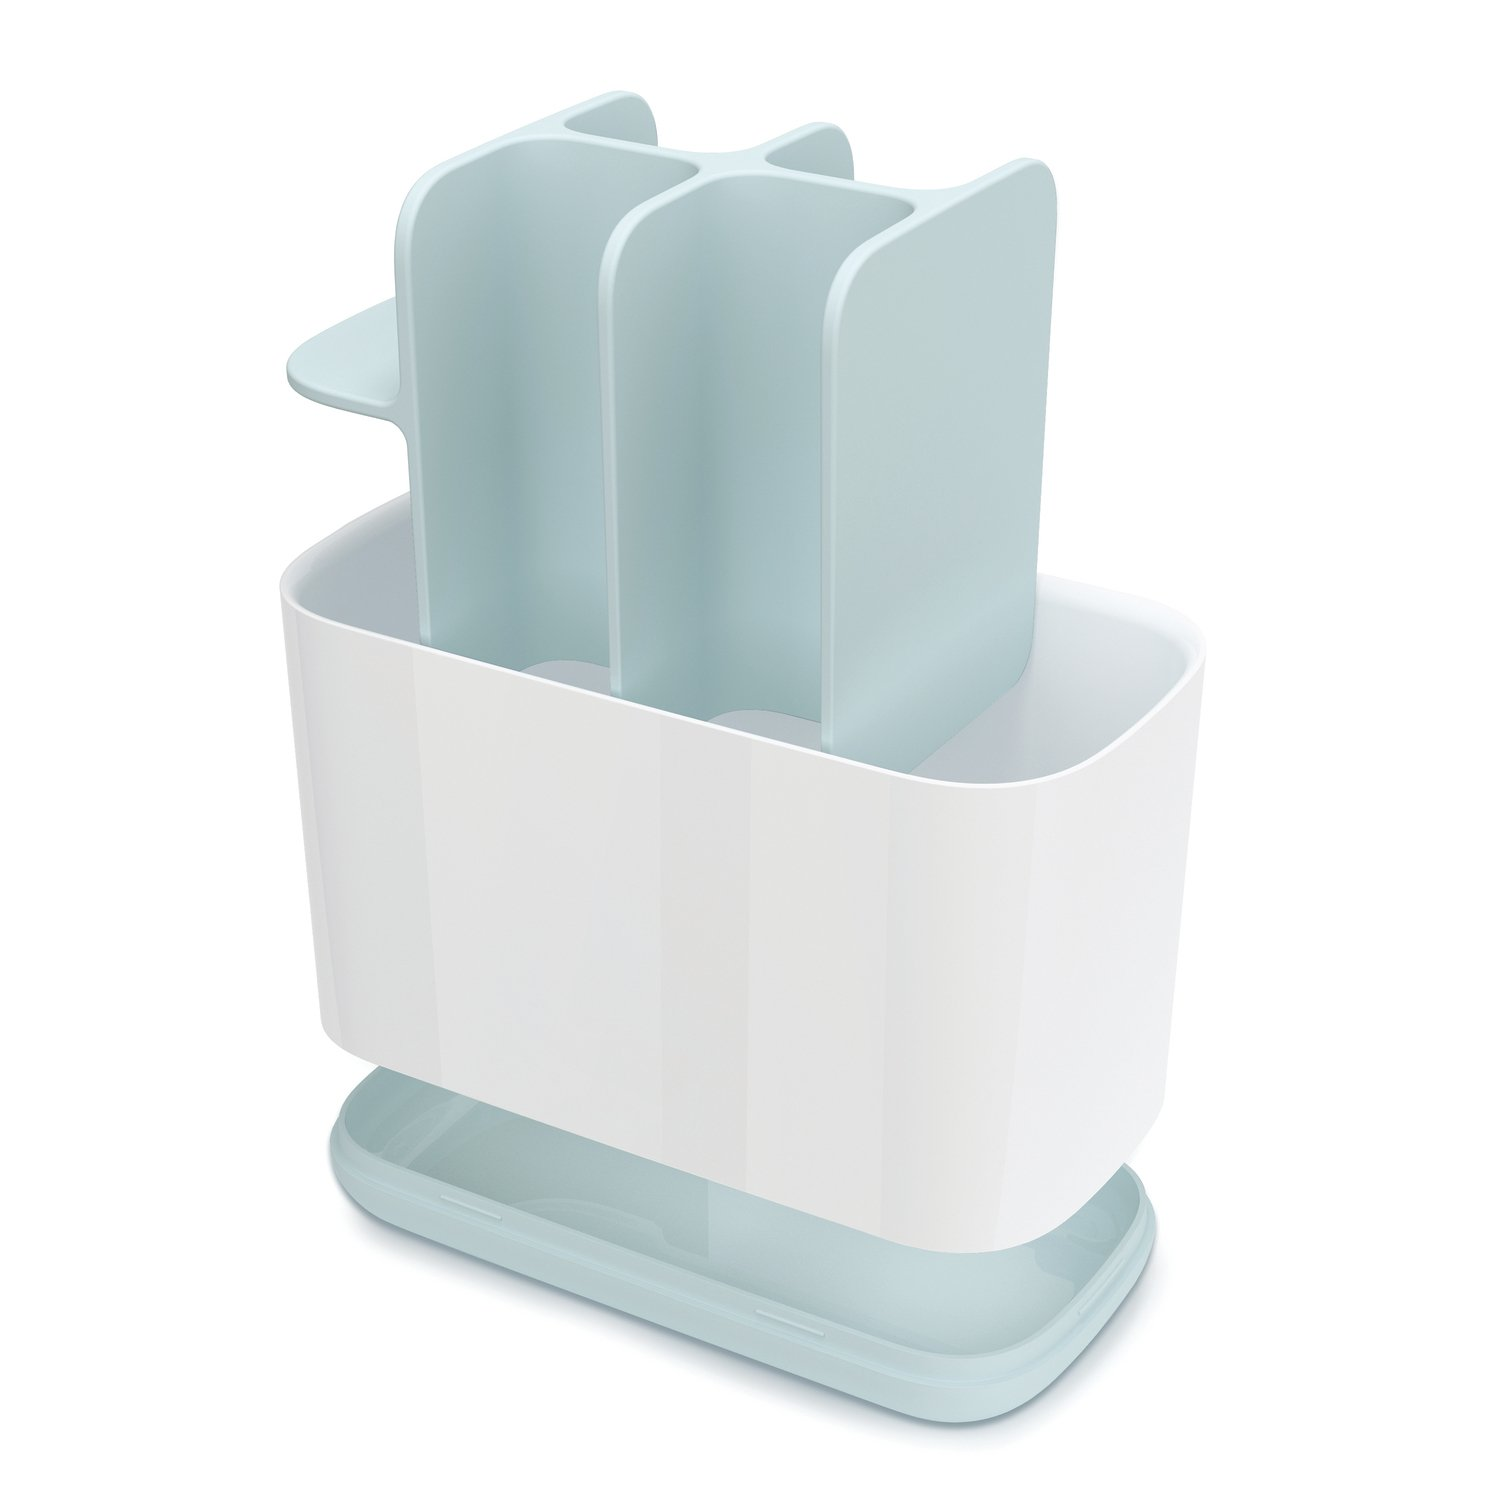 Amazon.com: Joseph Joseph Bathroom Easy-Store Toothbrush Caddy ...